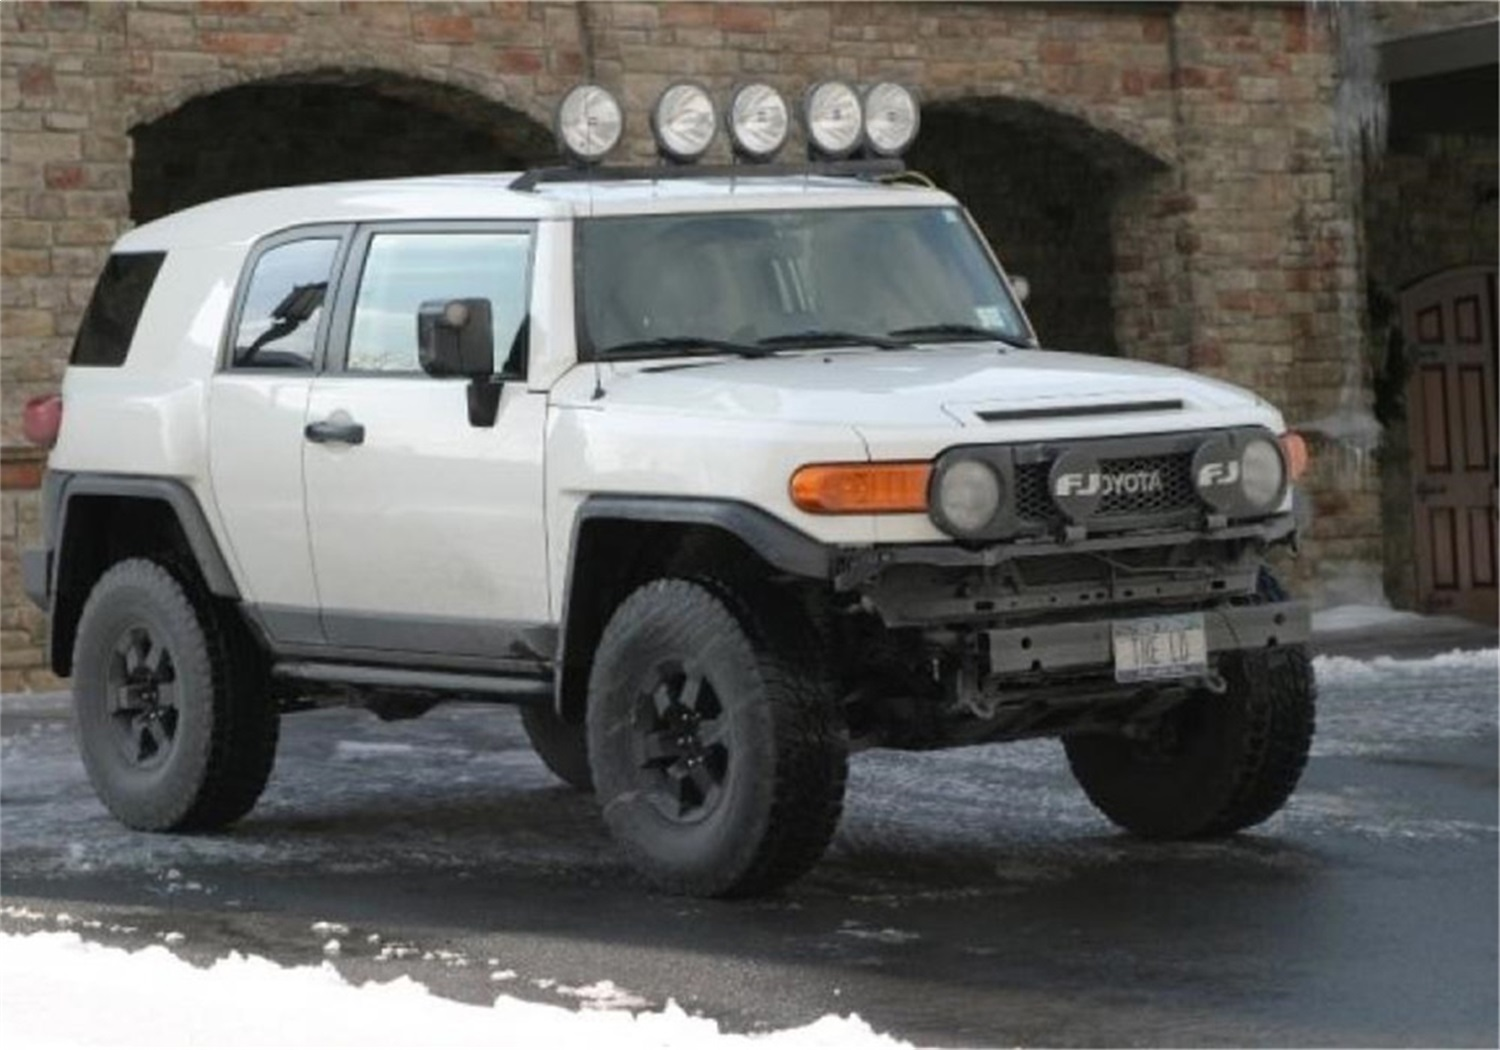 N fab tfj5flr roof mounted light bar fits 07 14 fj cruiser ebay n fab tfj5flr roof mounted light bar fits 07 14 fj cruiser mozeypictures Image collections